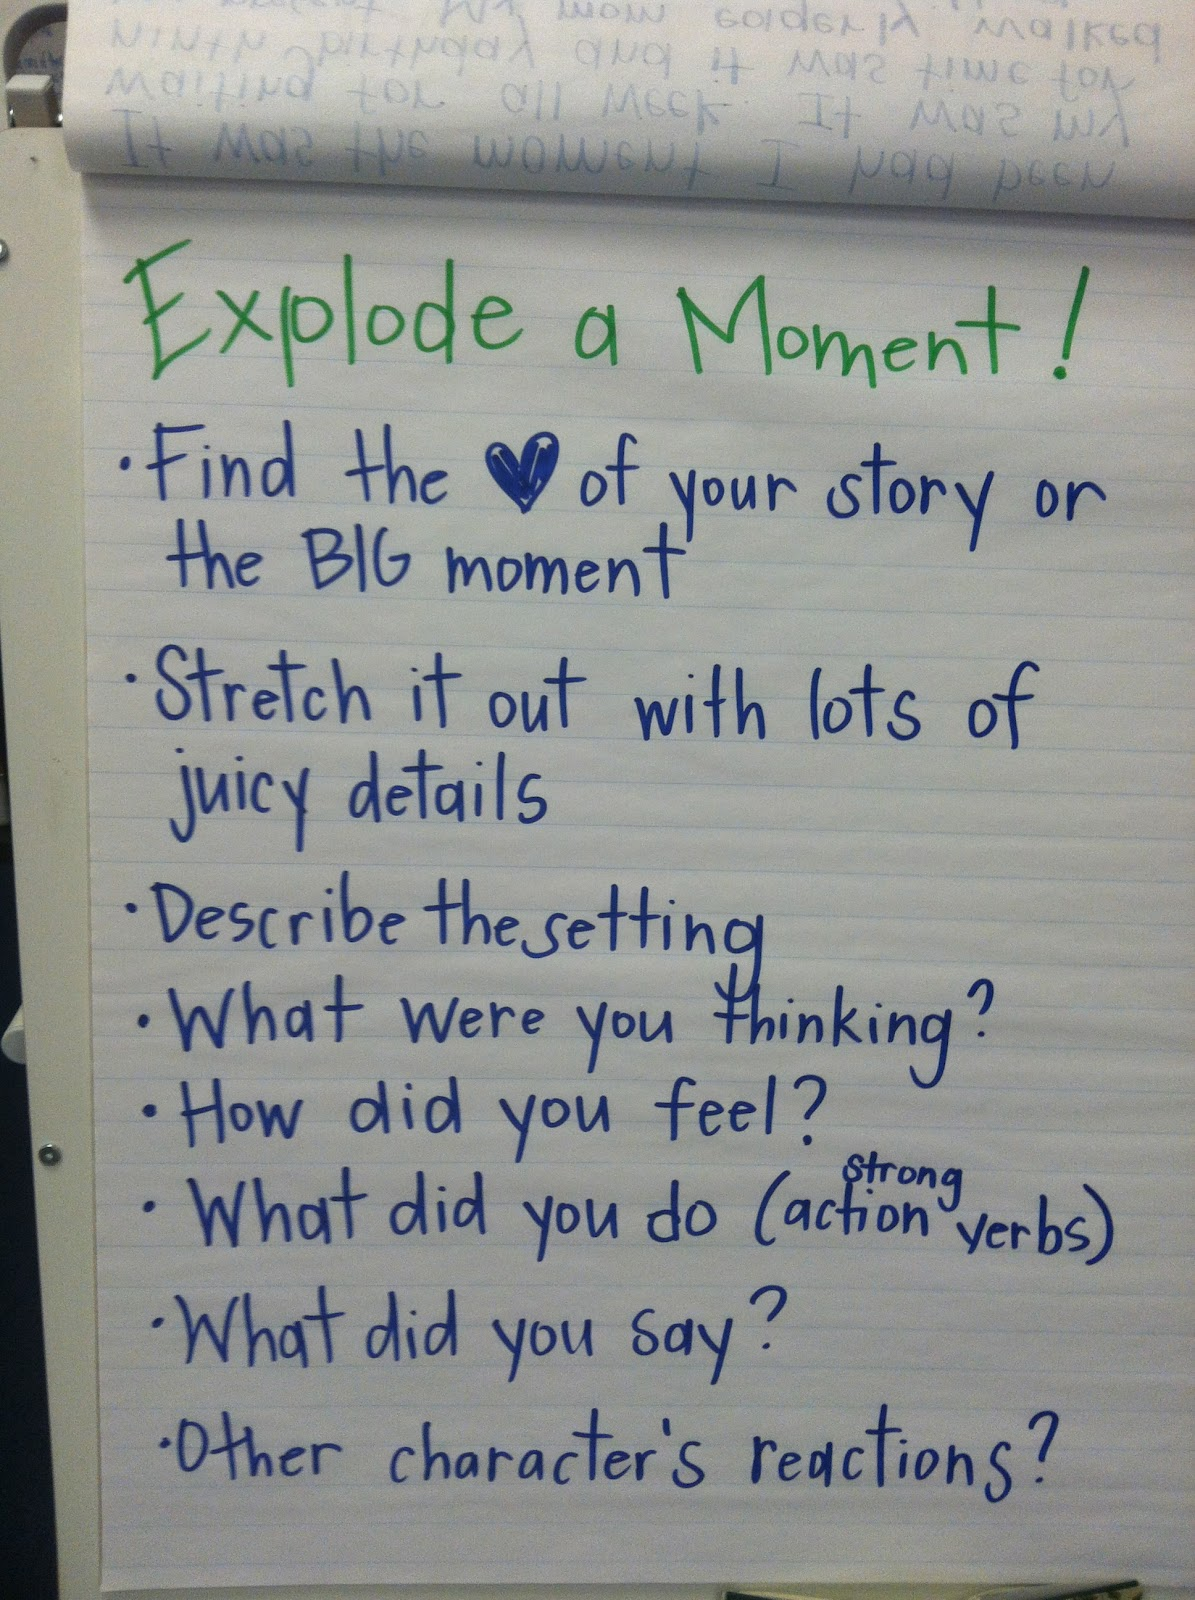 a moment in history essay Open document below is an essay on a moment in history from anti essays, your source for research papers, essays, and term paper examples.